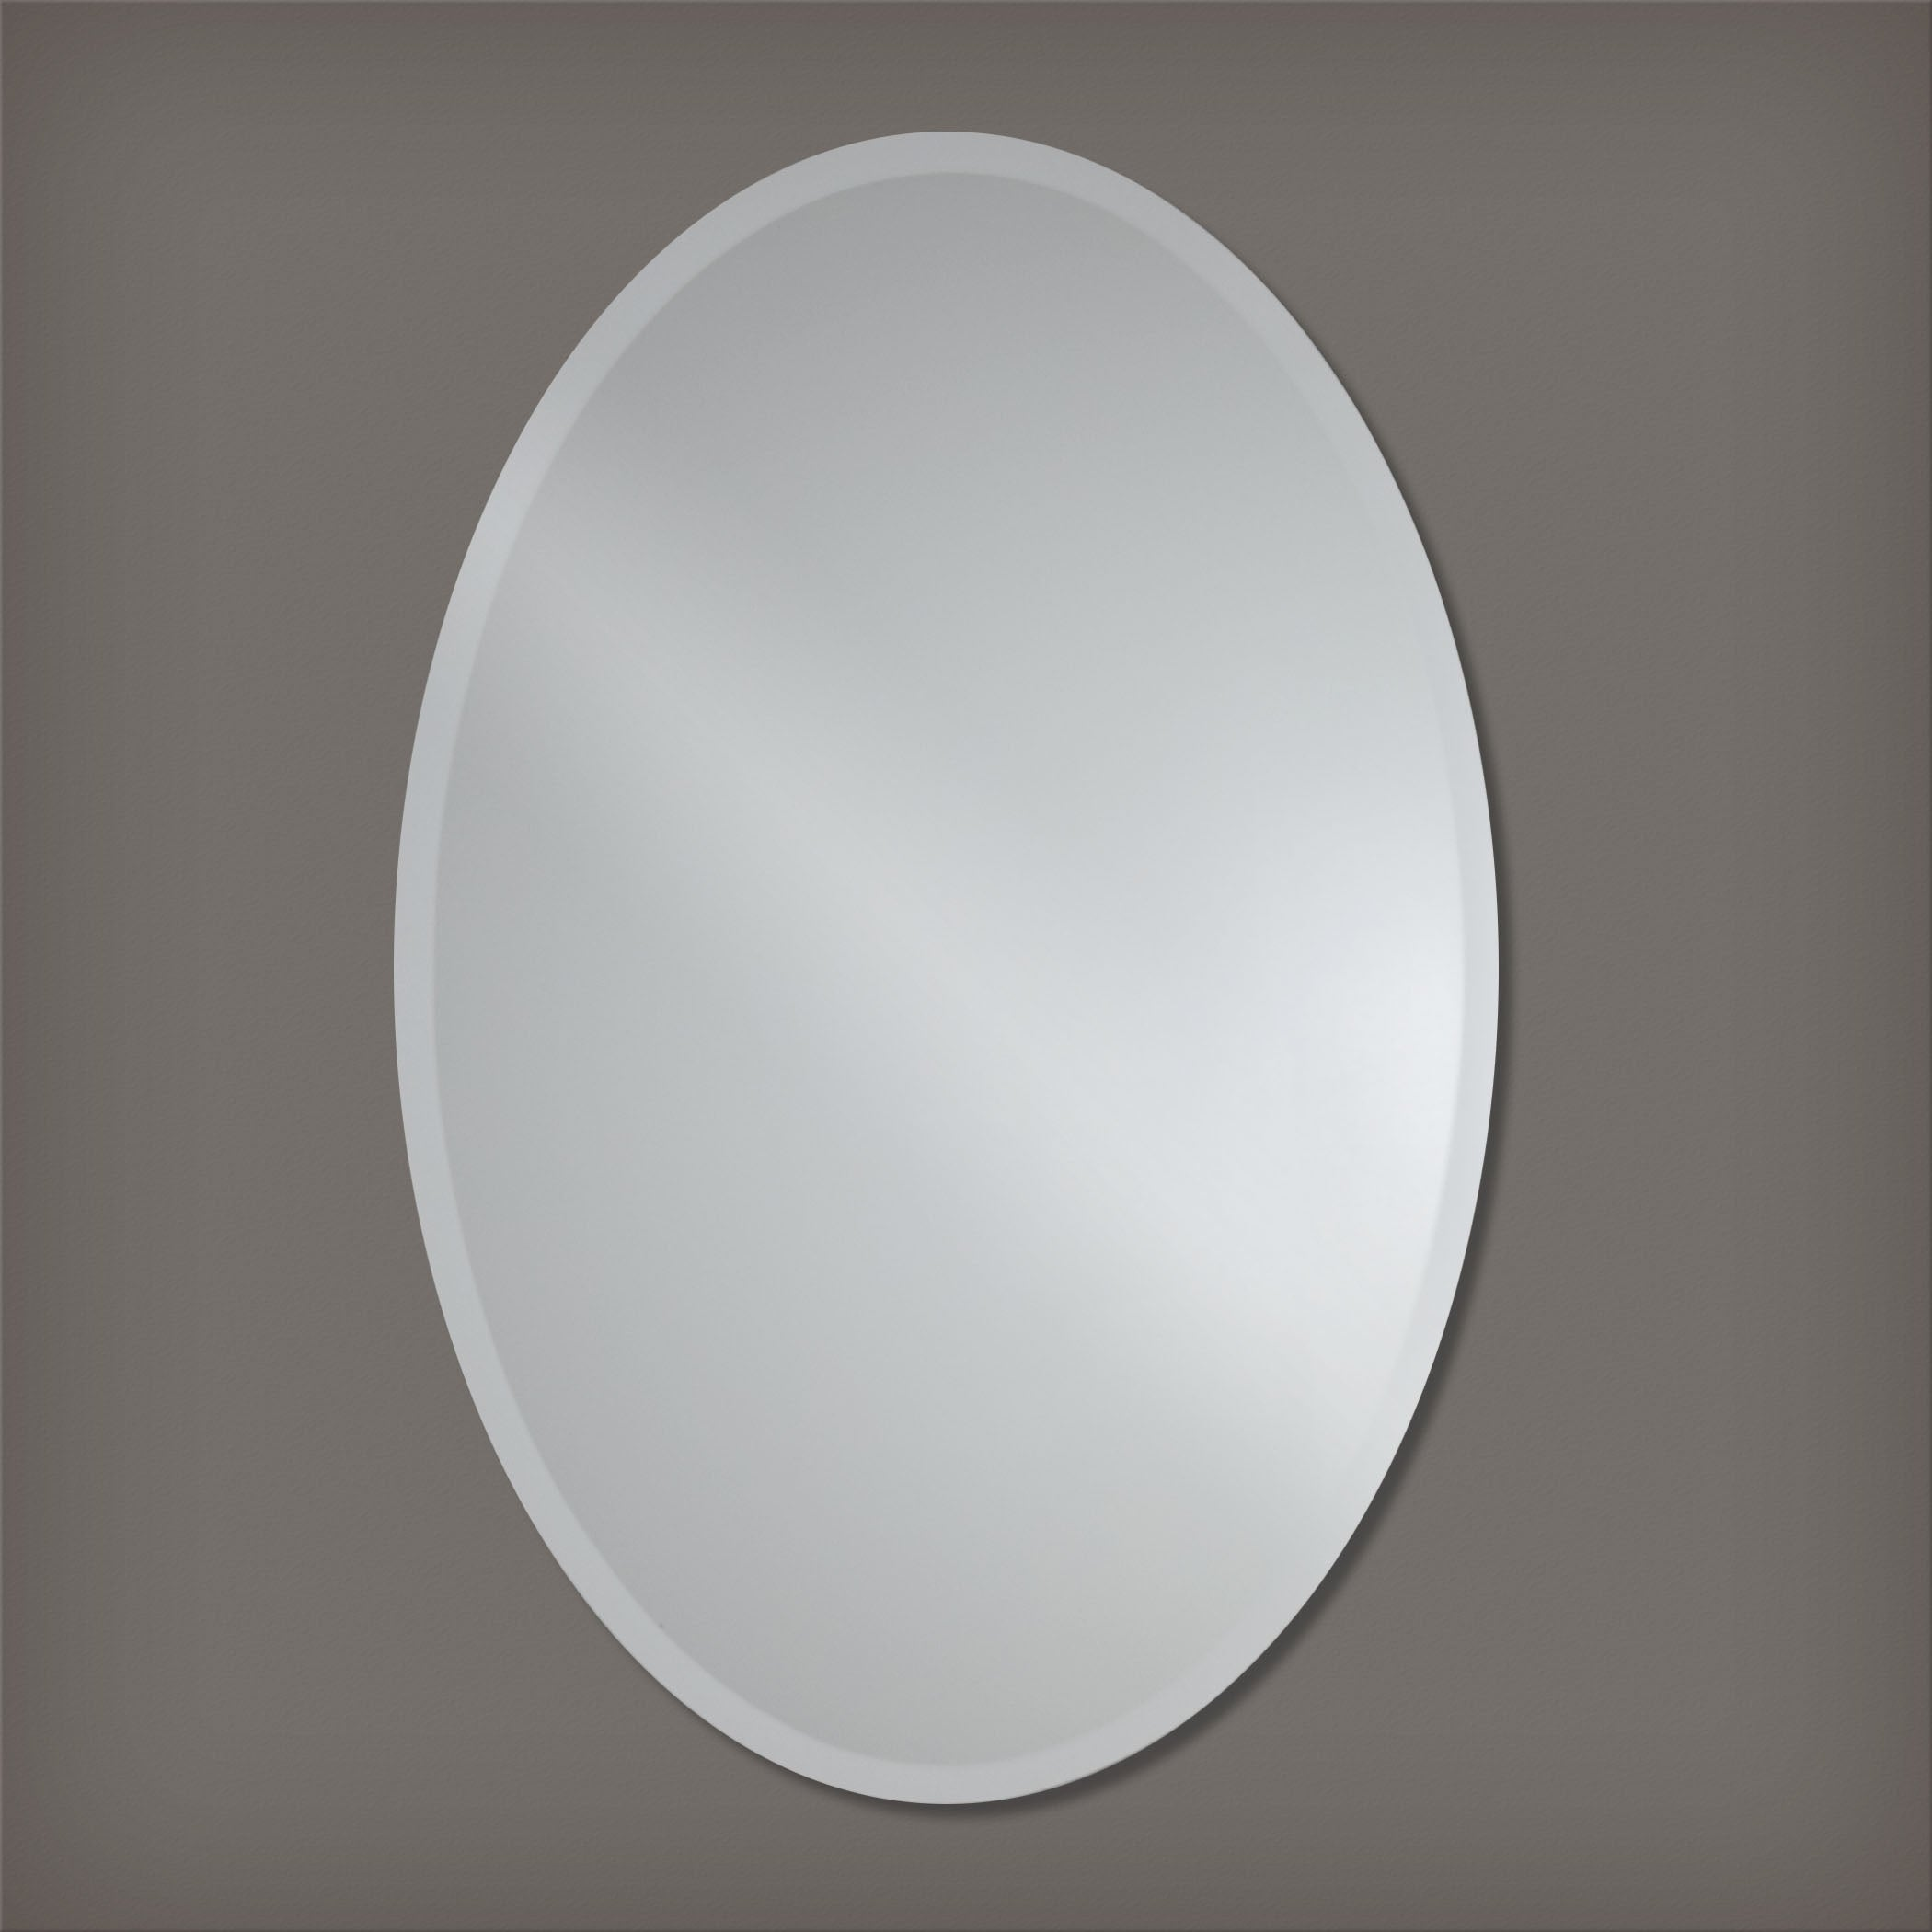 Frameless Beveled Oval Wall Mirror By The Better Bevel Free Shipping Today 17520470